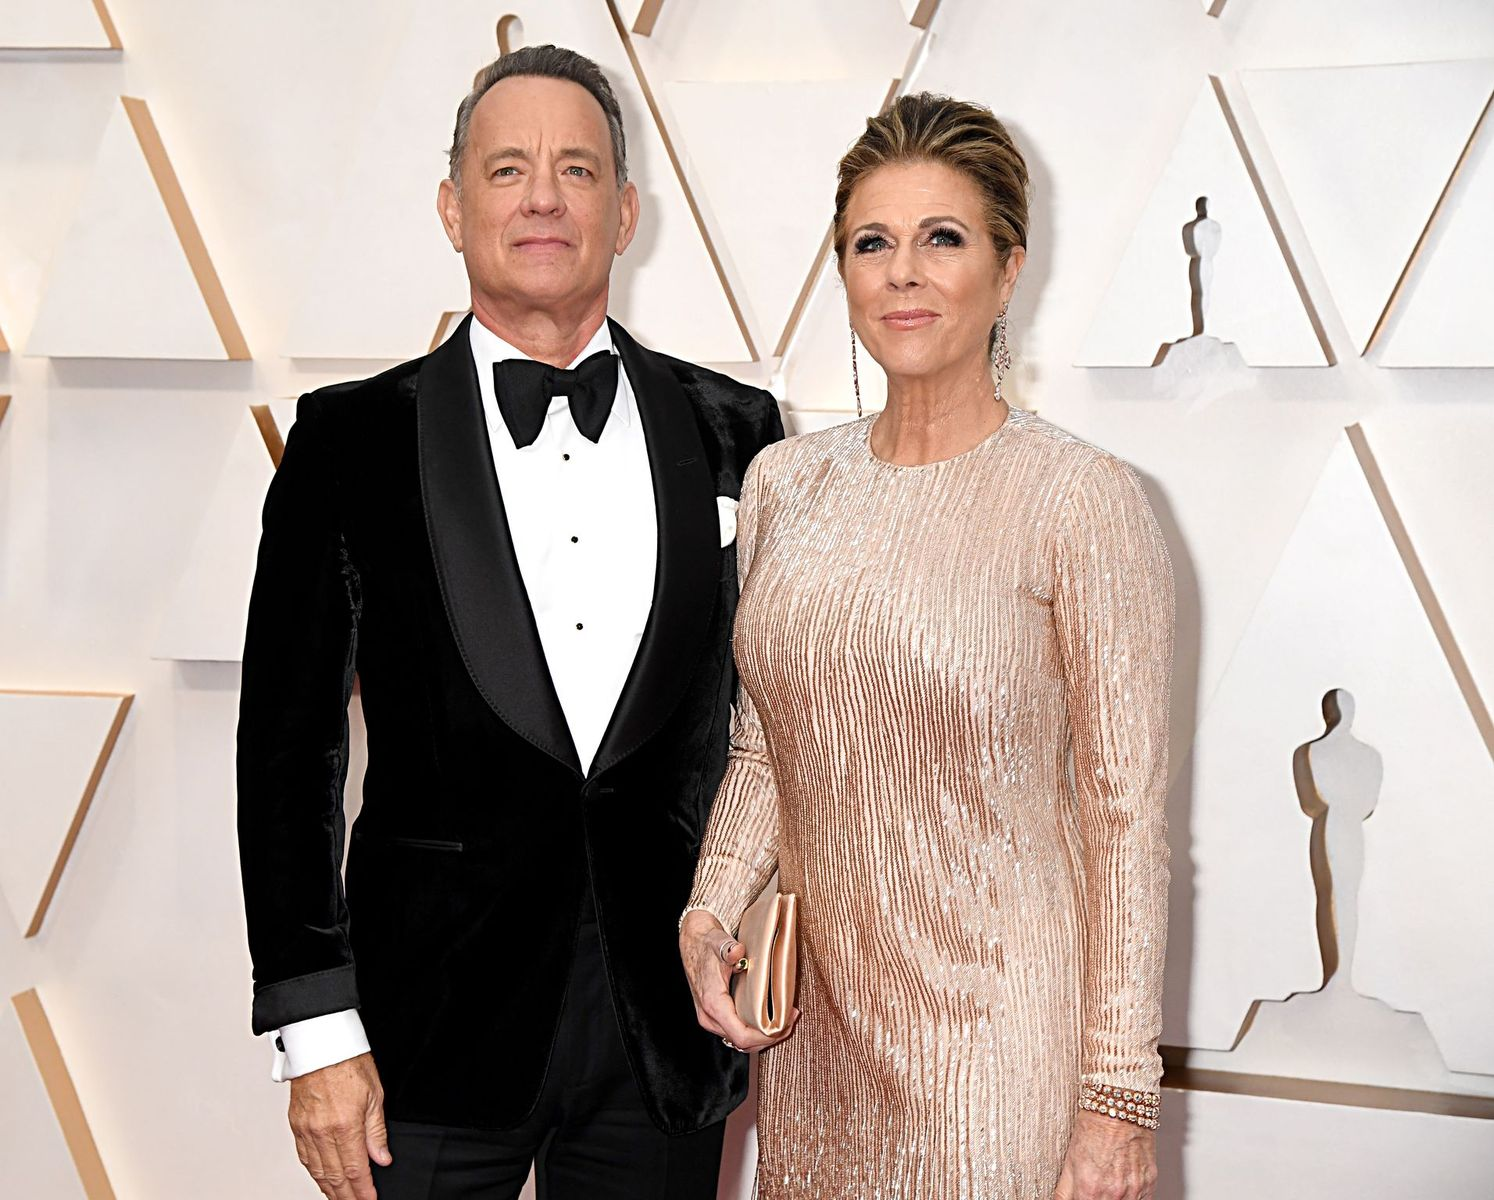 Tom Hanks and Rita Wilson at the 92nd Annual Academy Awards on February 09, 2020, in Hollywood, California | Photo: Jeff Kravitz/FilmMagic/Getty Images